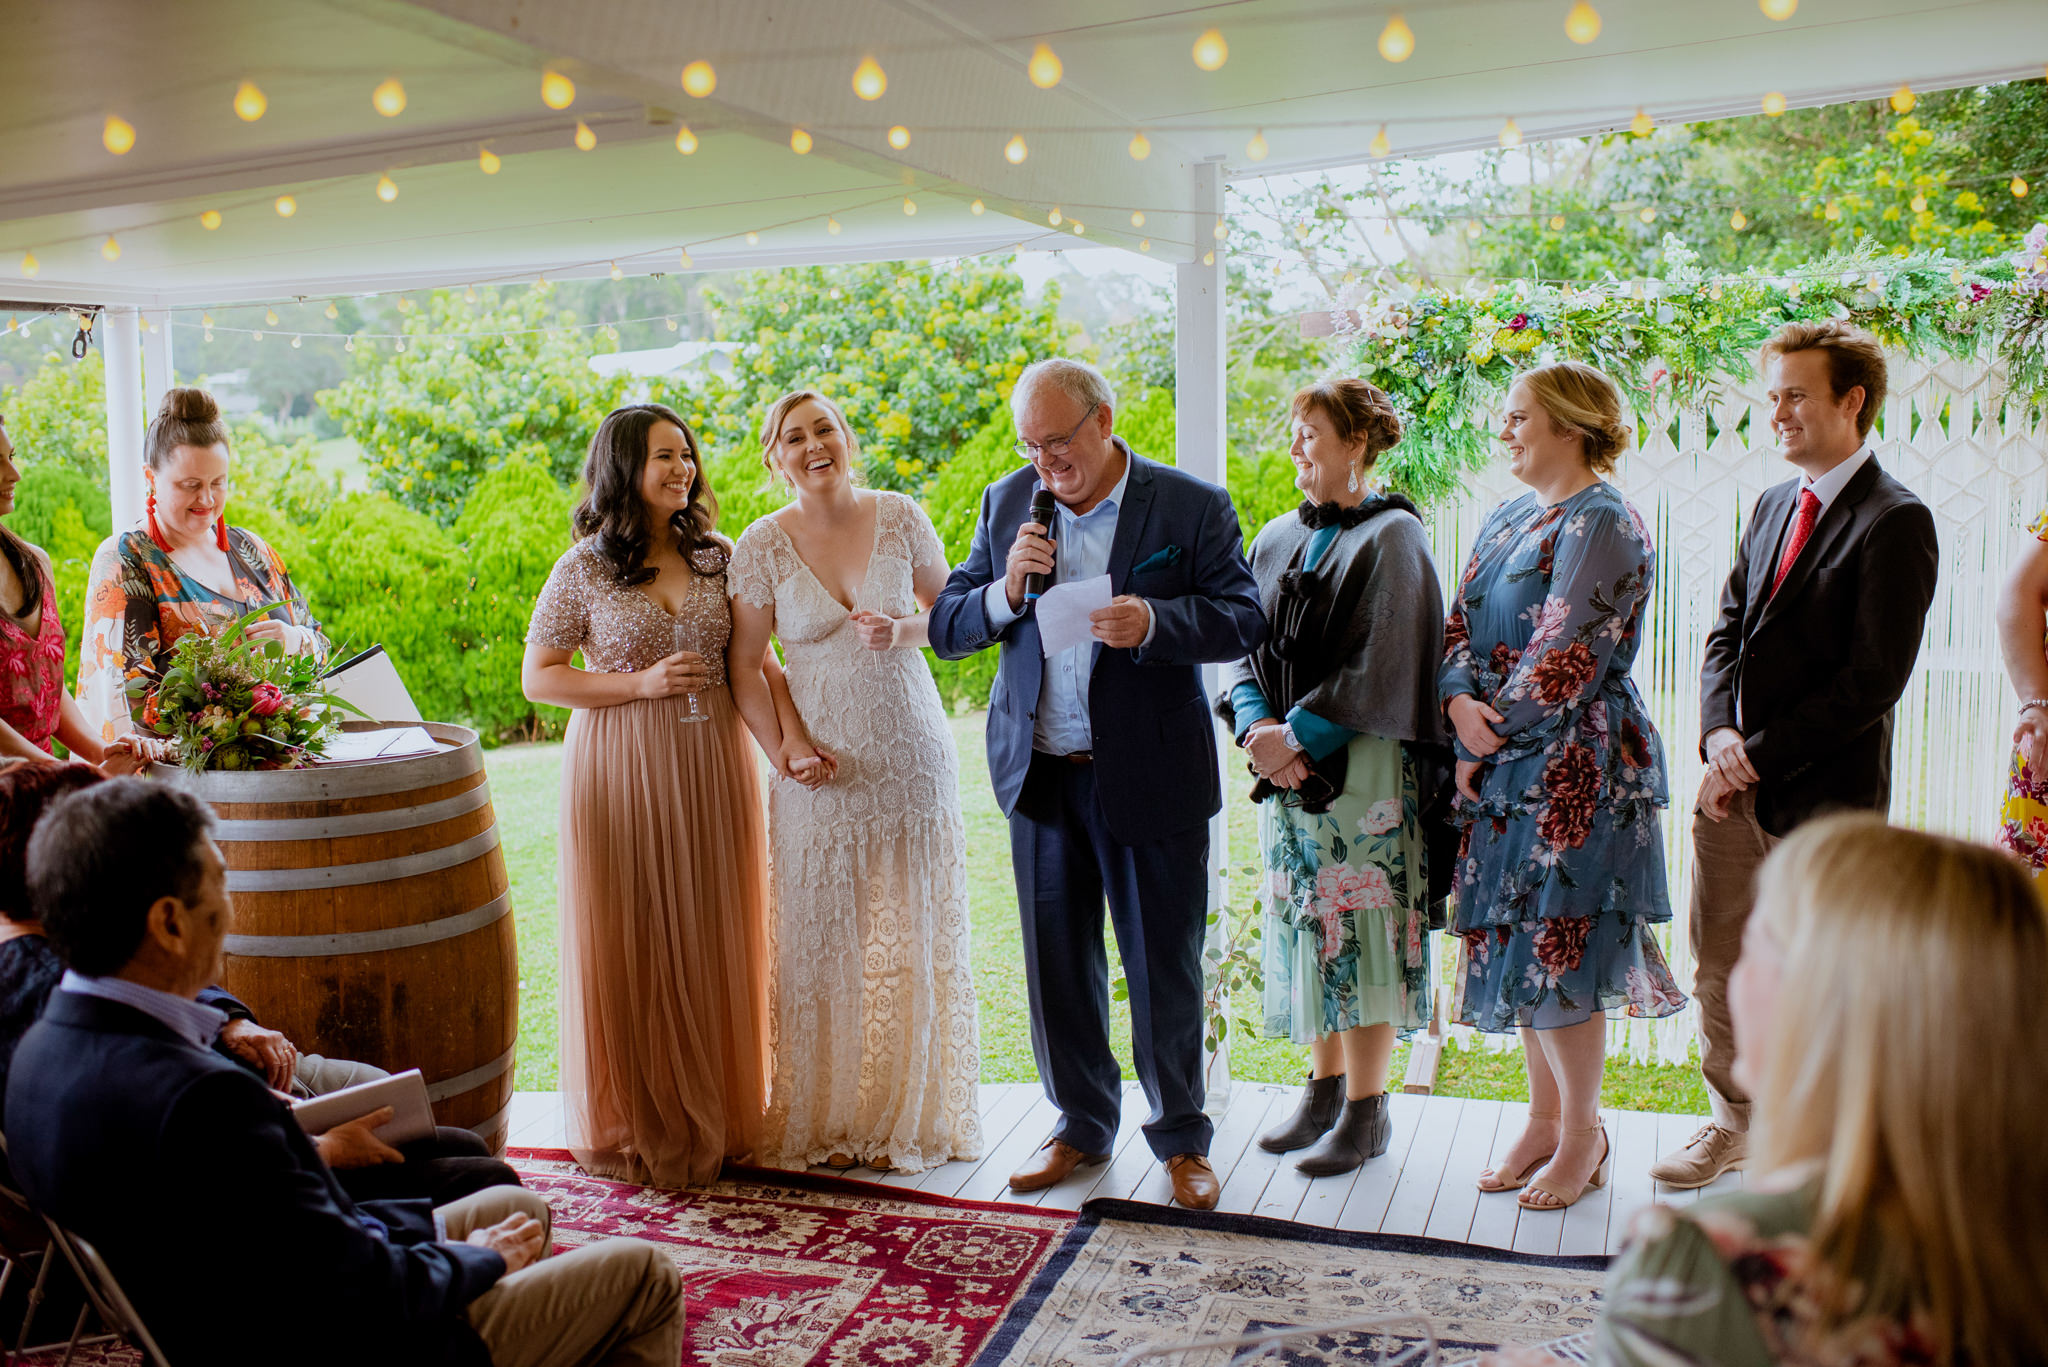 Same sex backyard Maleny wedding ceremony with father of the bride speaking at